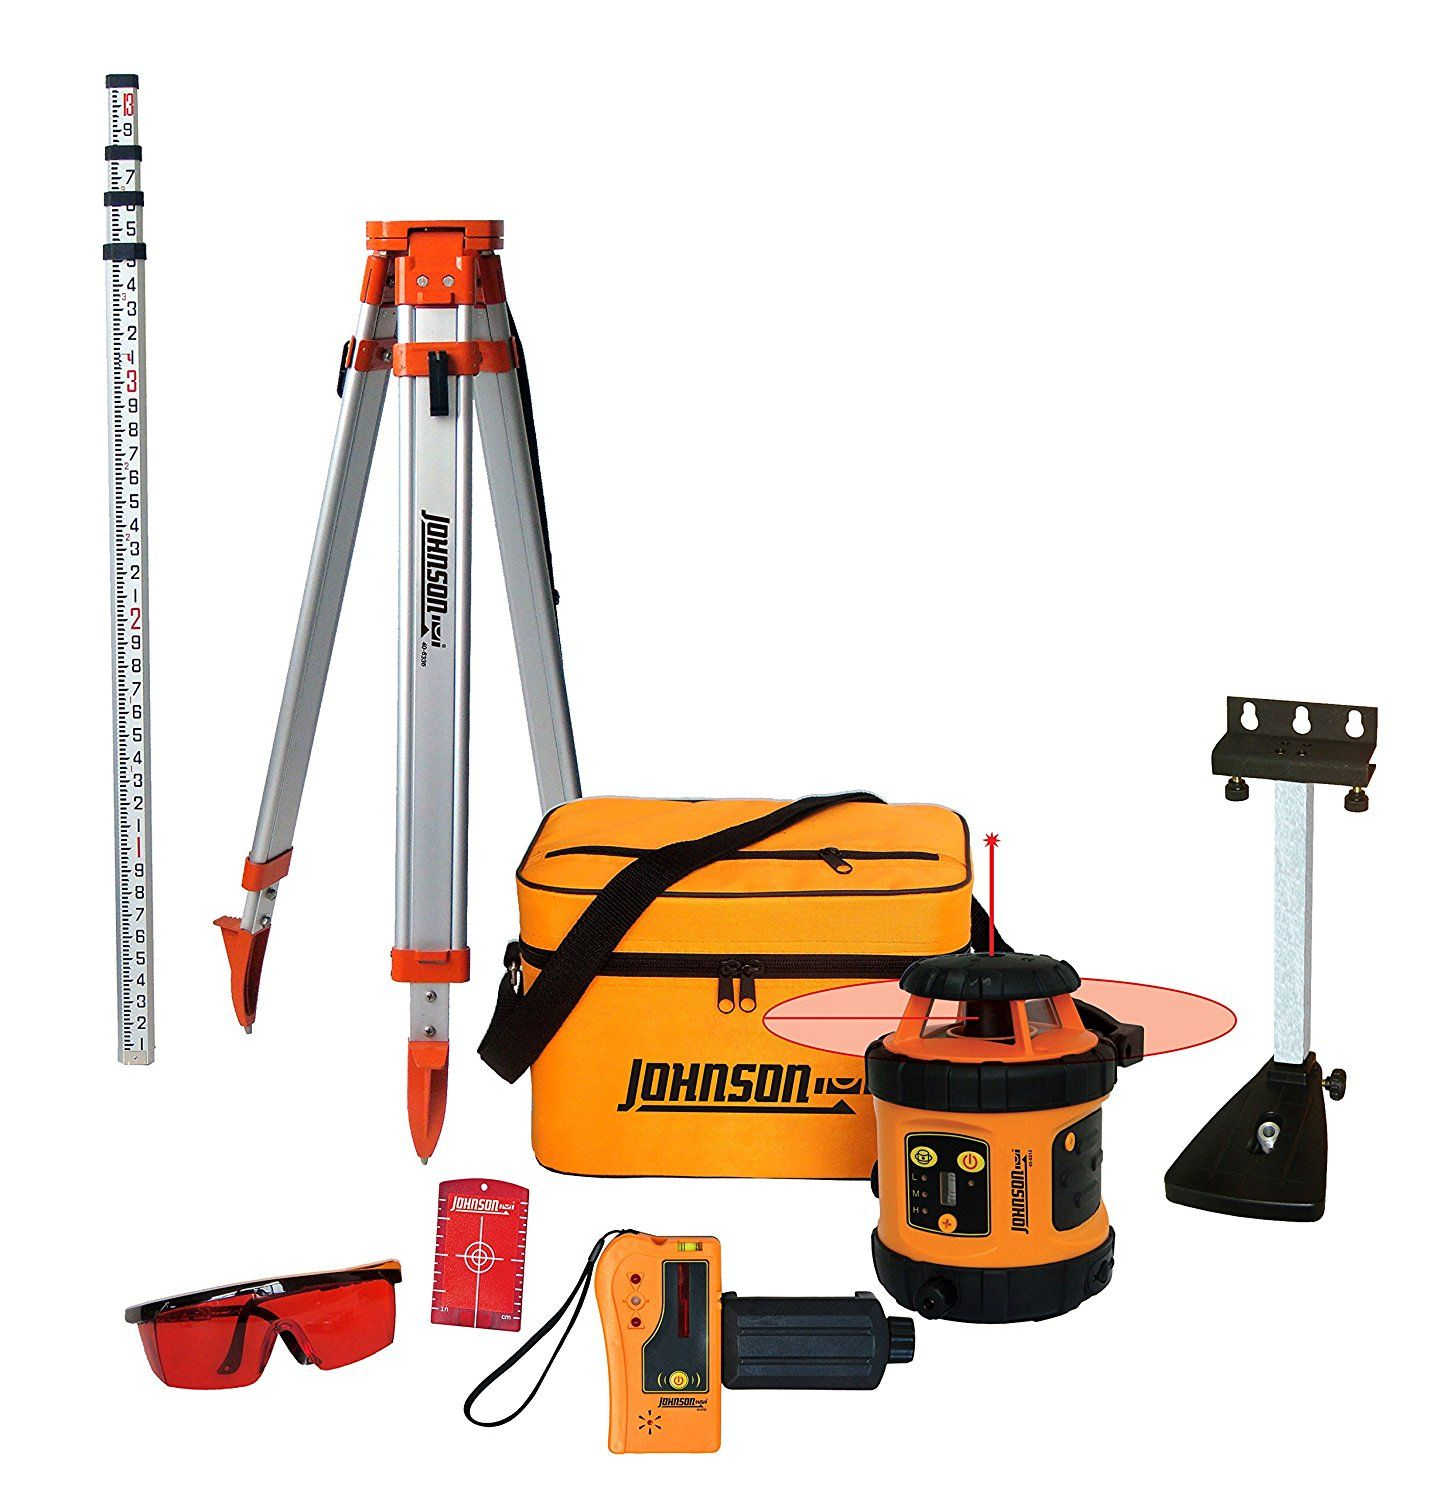 Self Leveling Rotary Laser Level Reviews Johnson Level Tool 99 006k Self Leveling Rotary Laser System Kit This John Laser Levels Rotary Mounting Brackets